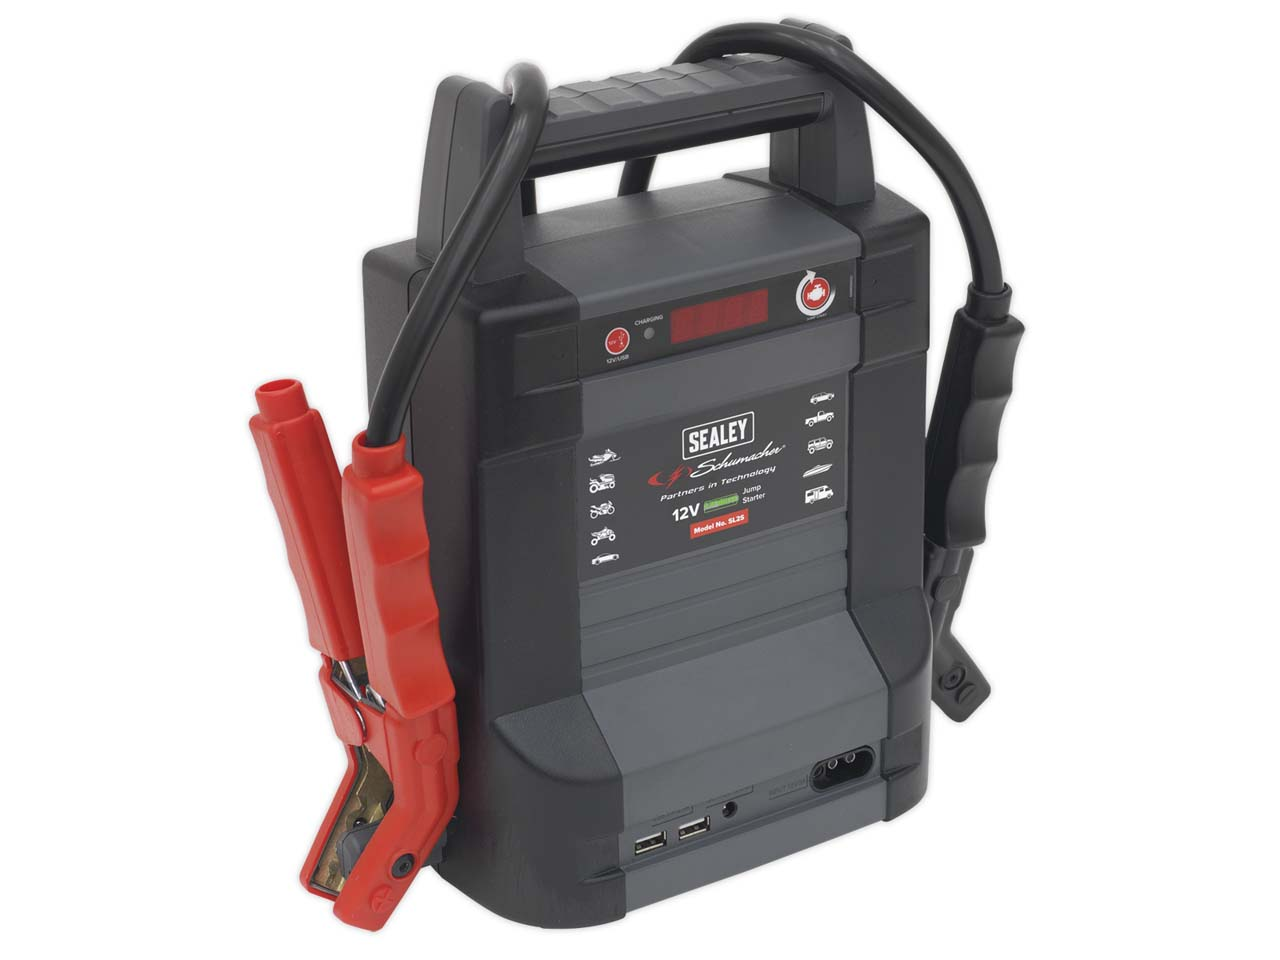 Sealey SL65S Jump Starter Power Pack Lithium 400A Multi-Colour LiCoO2